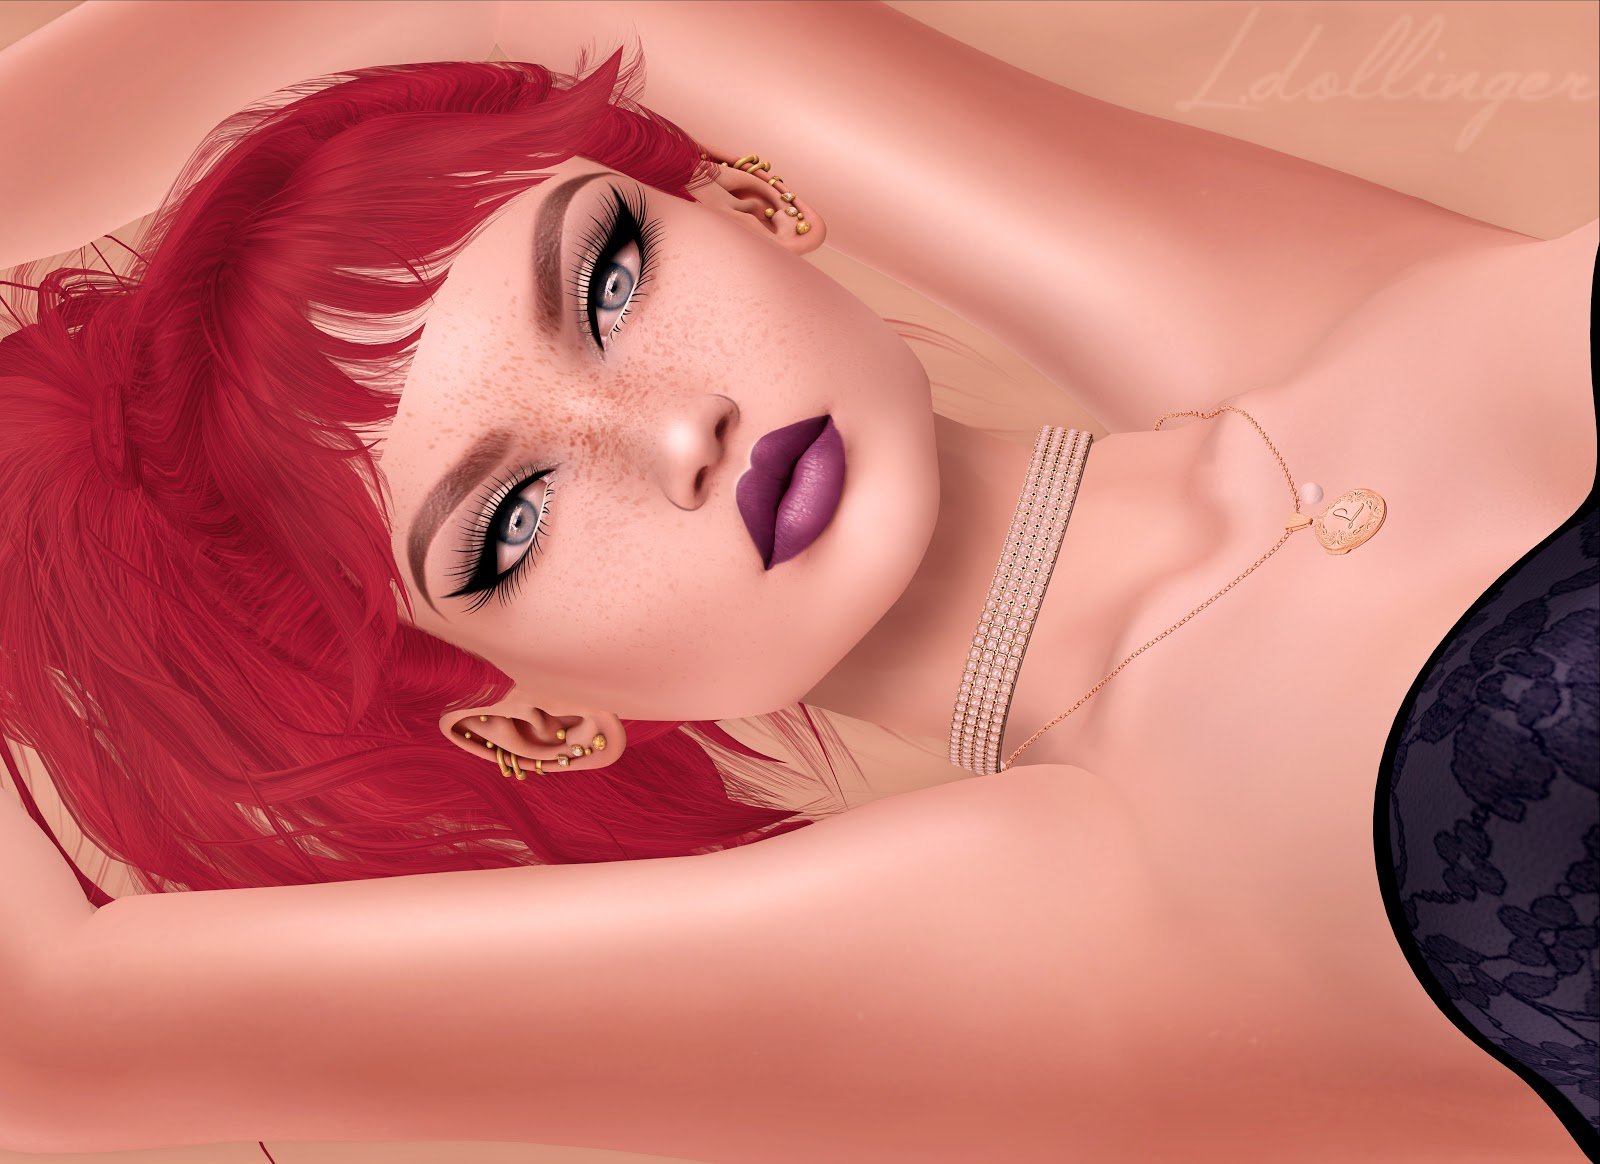 https://www.flickr.com/photos/itdollz/37170517702/in/photostream/lightbox/